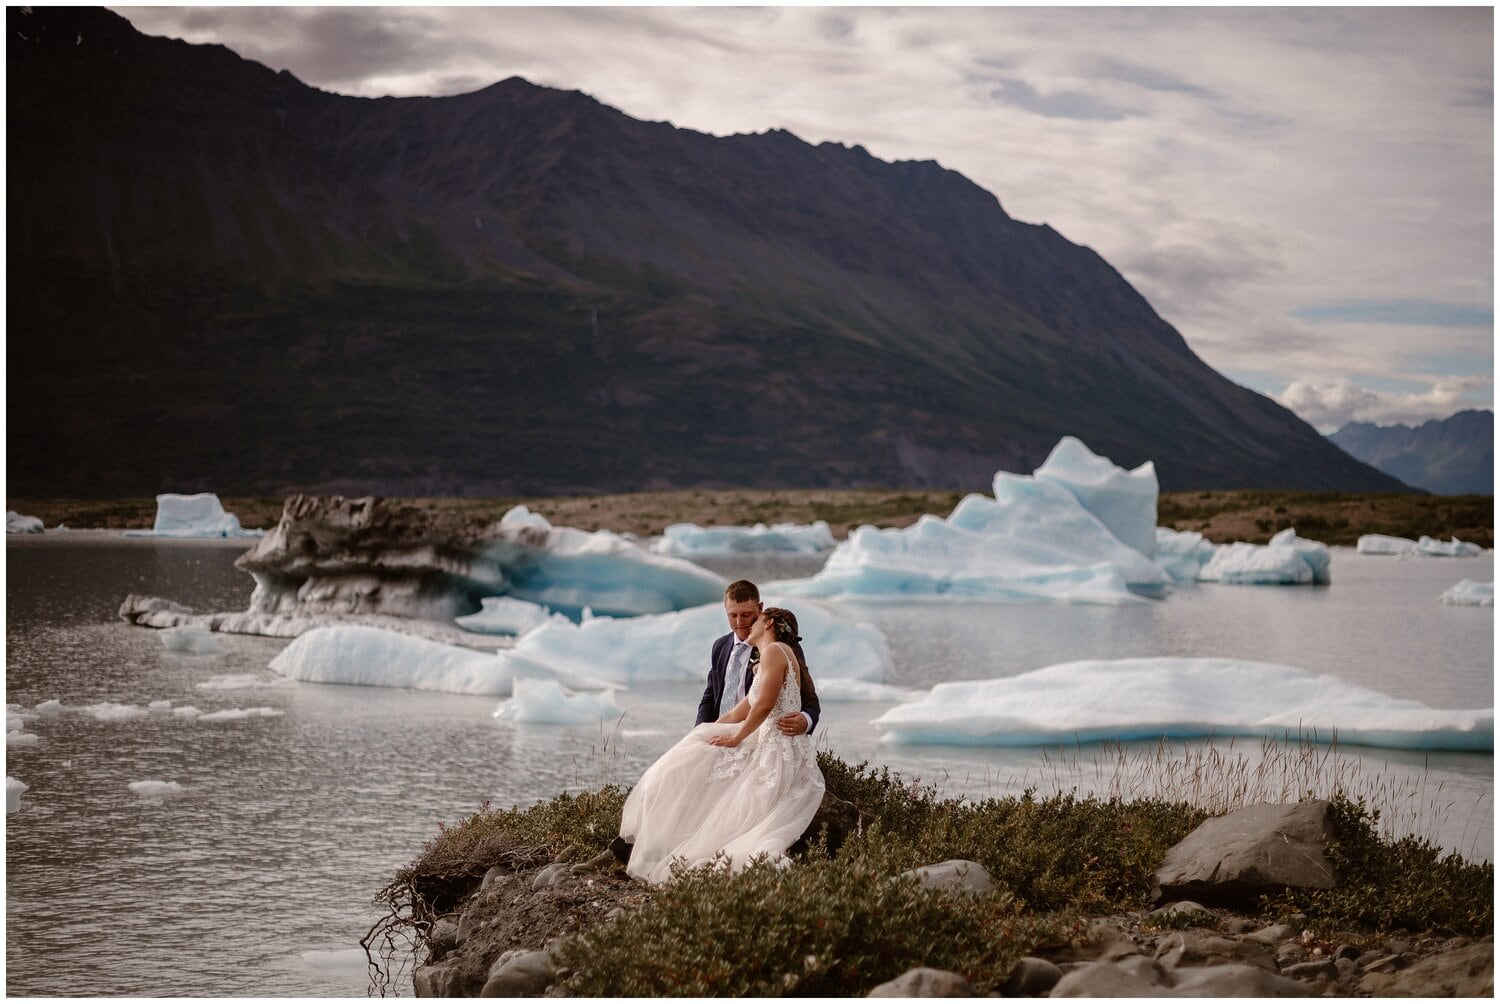 Bride leans on groom during their elopement in front of icebergs and mountains.